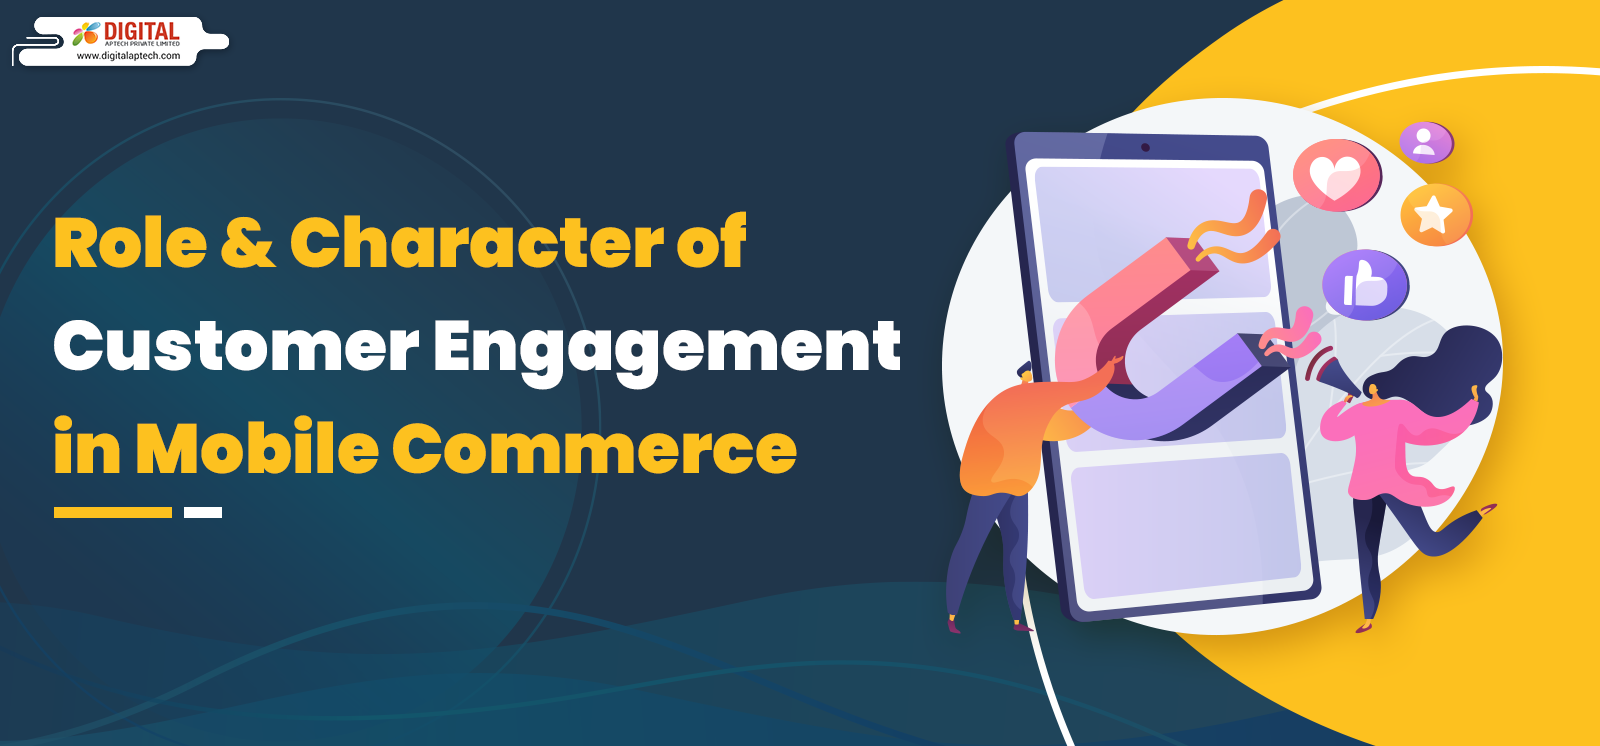 Role & Character of Customer Engagement in Mobile Commerce